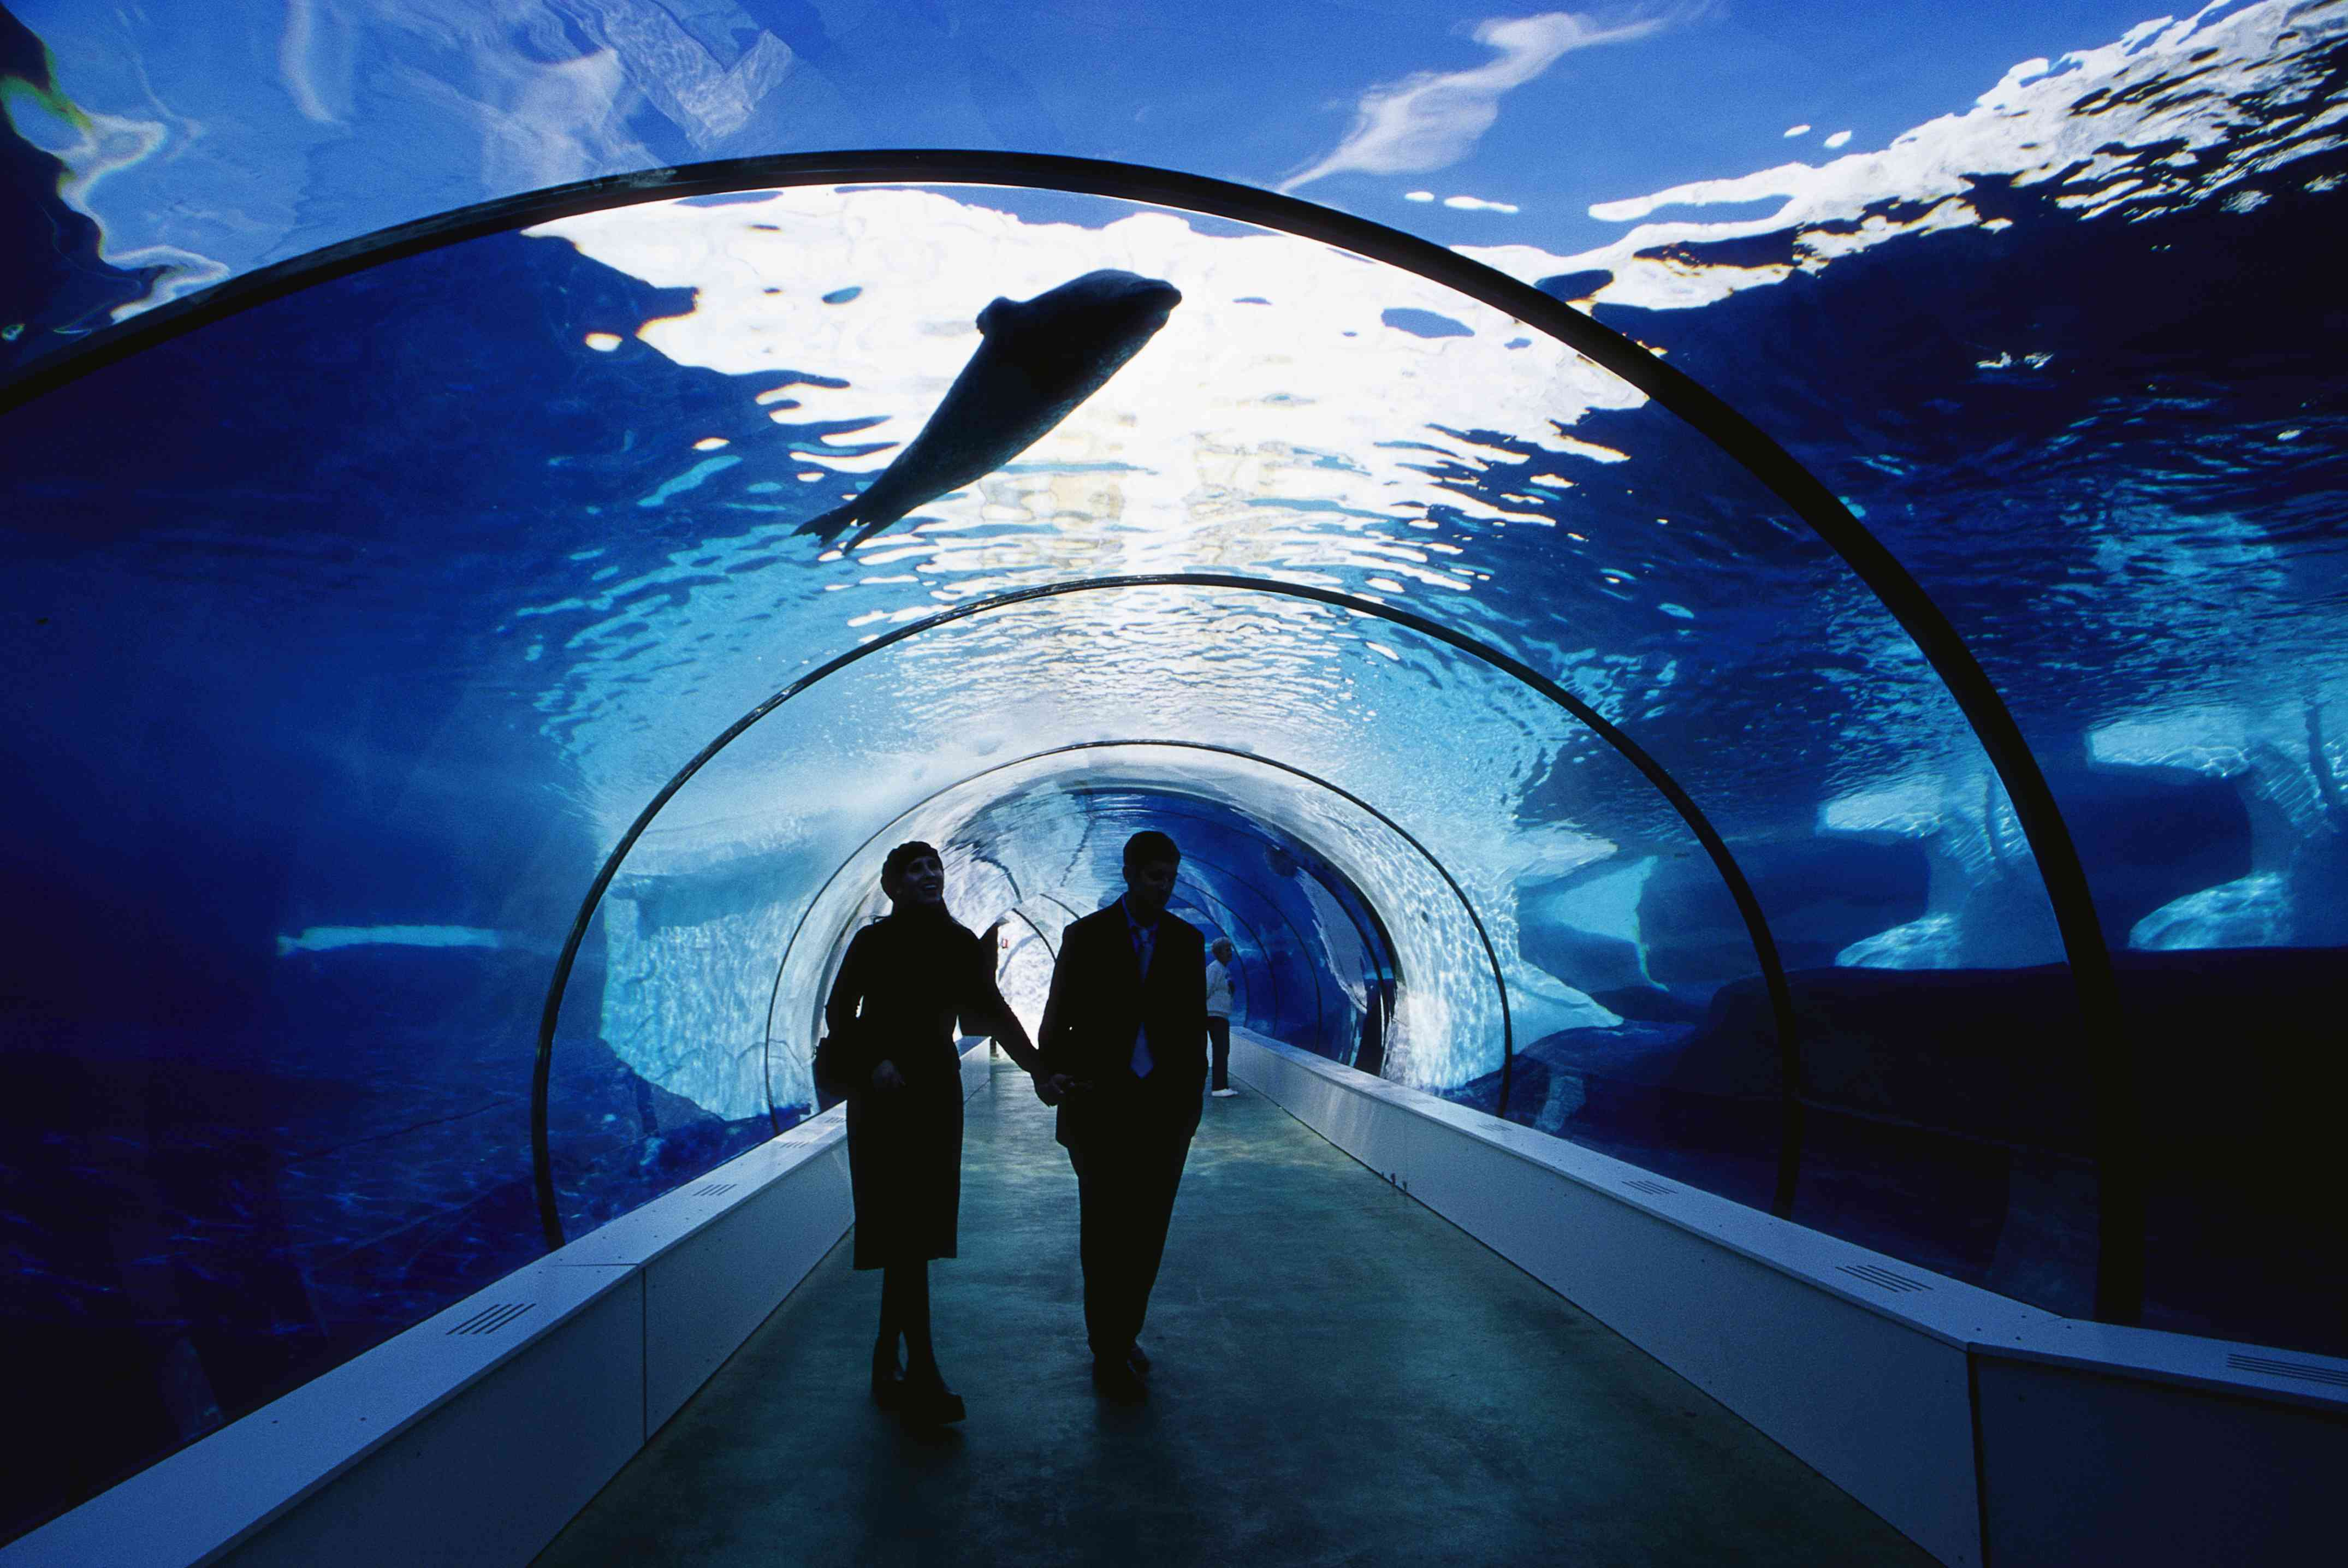 Couple walking through the underwater tunnel in the Arctic Ring of Life exhibit at the Detroit Zoo